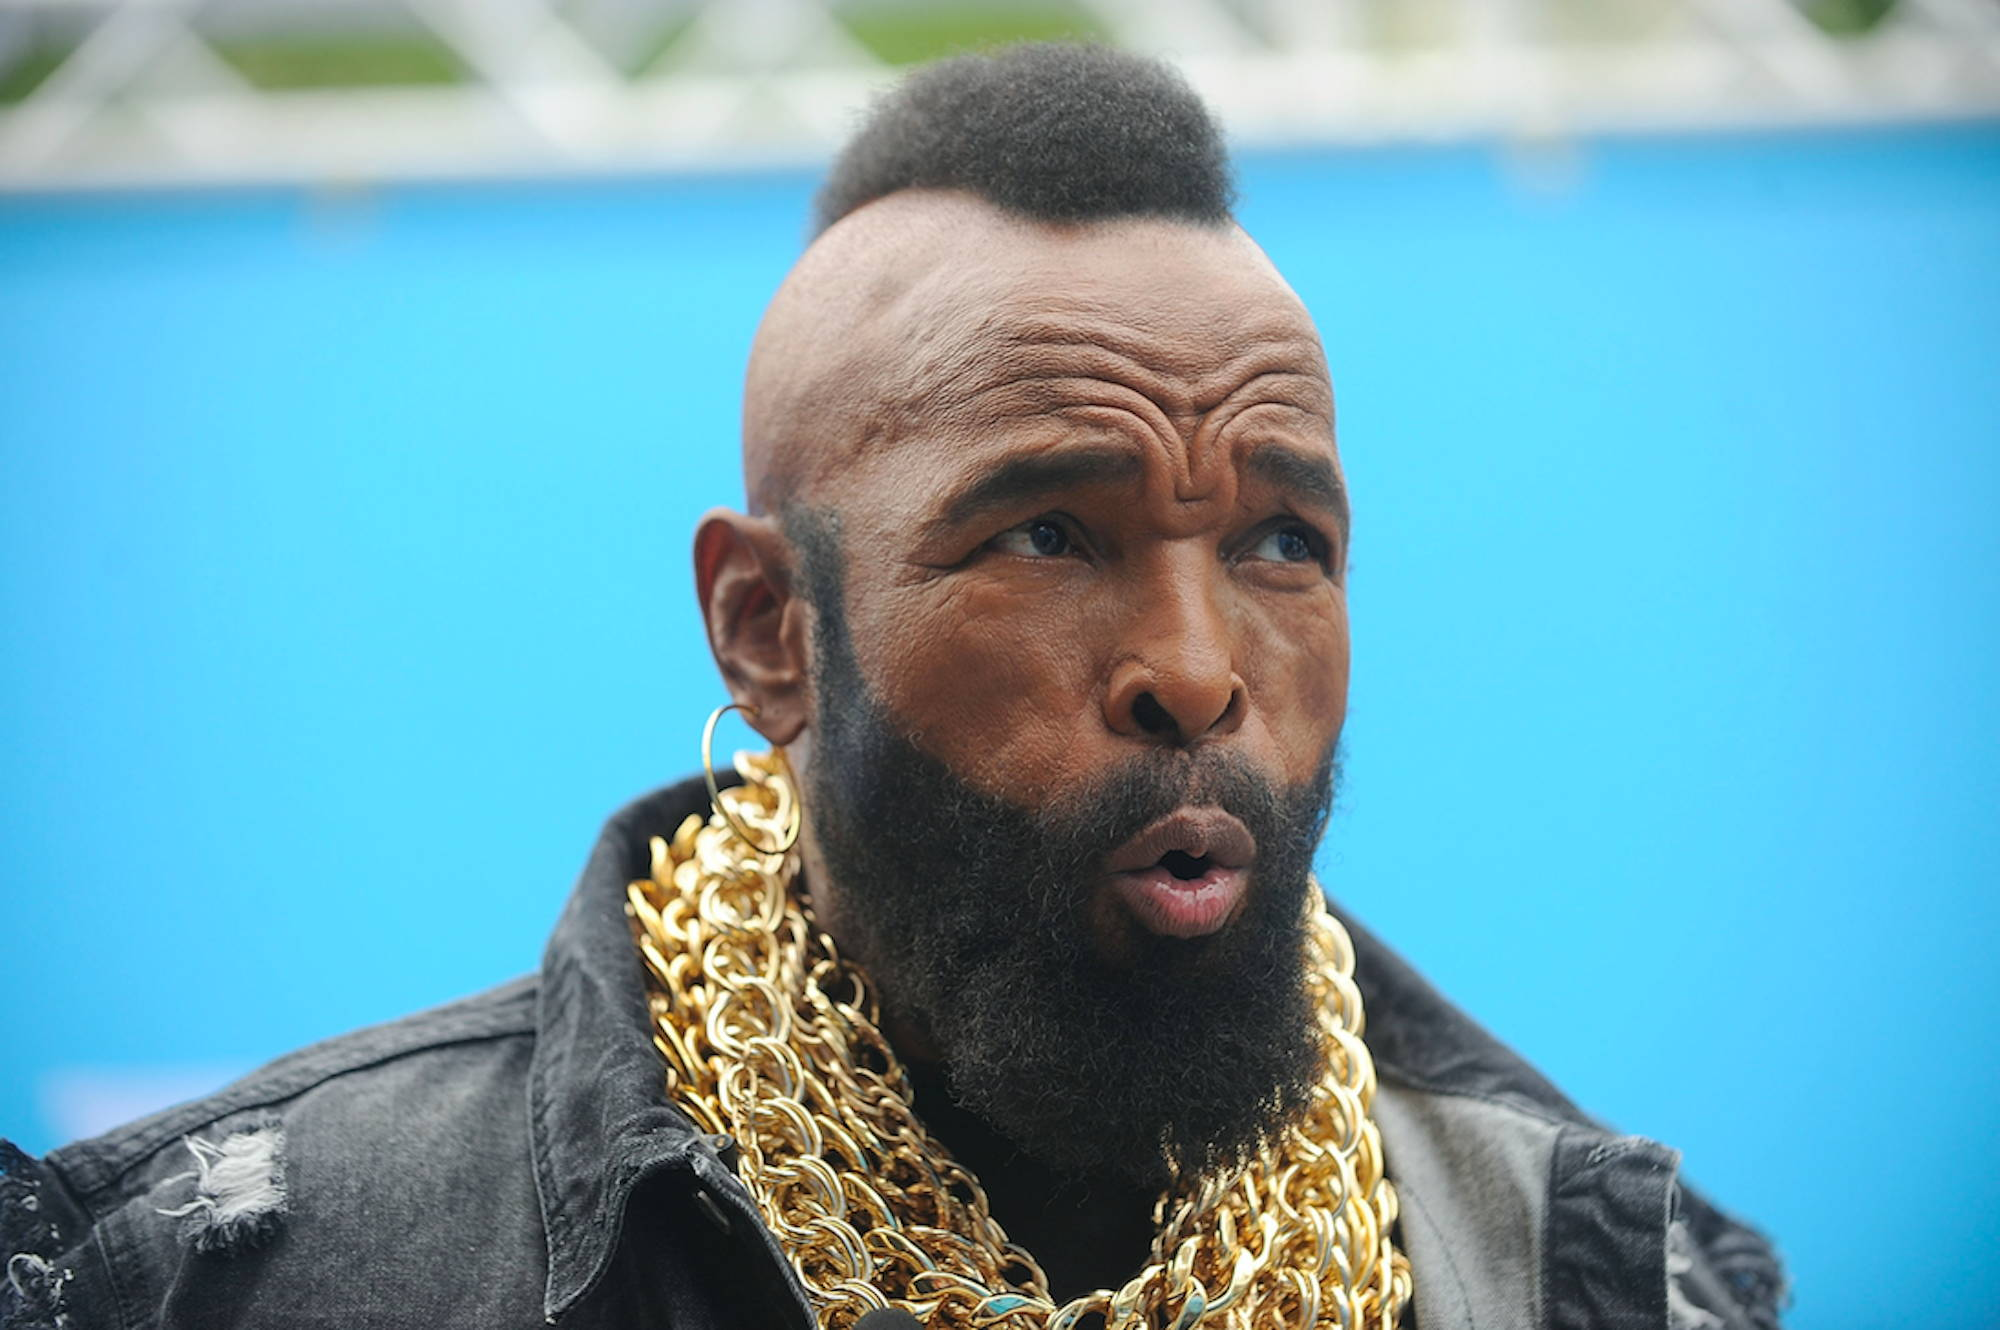 Mr T Trying Man Made Beard Care